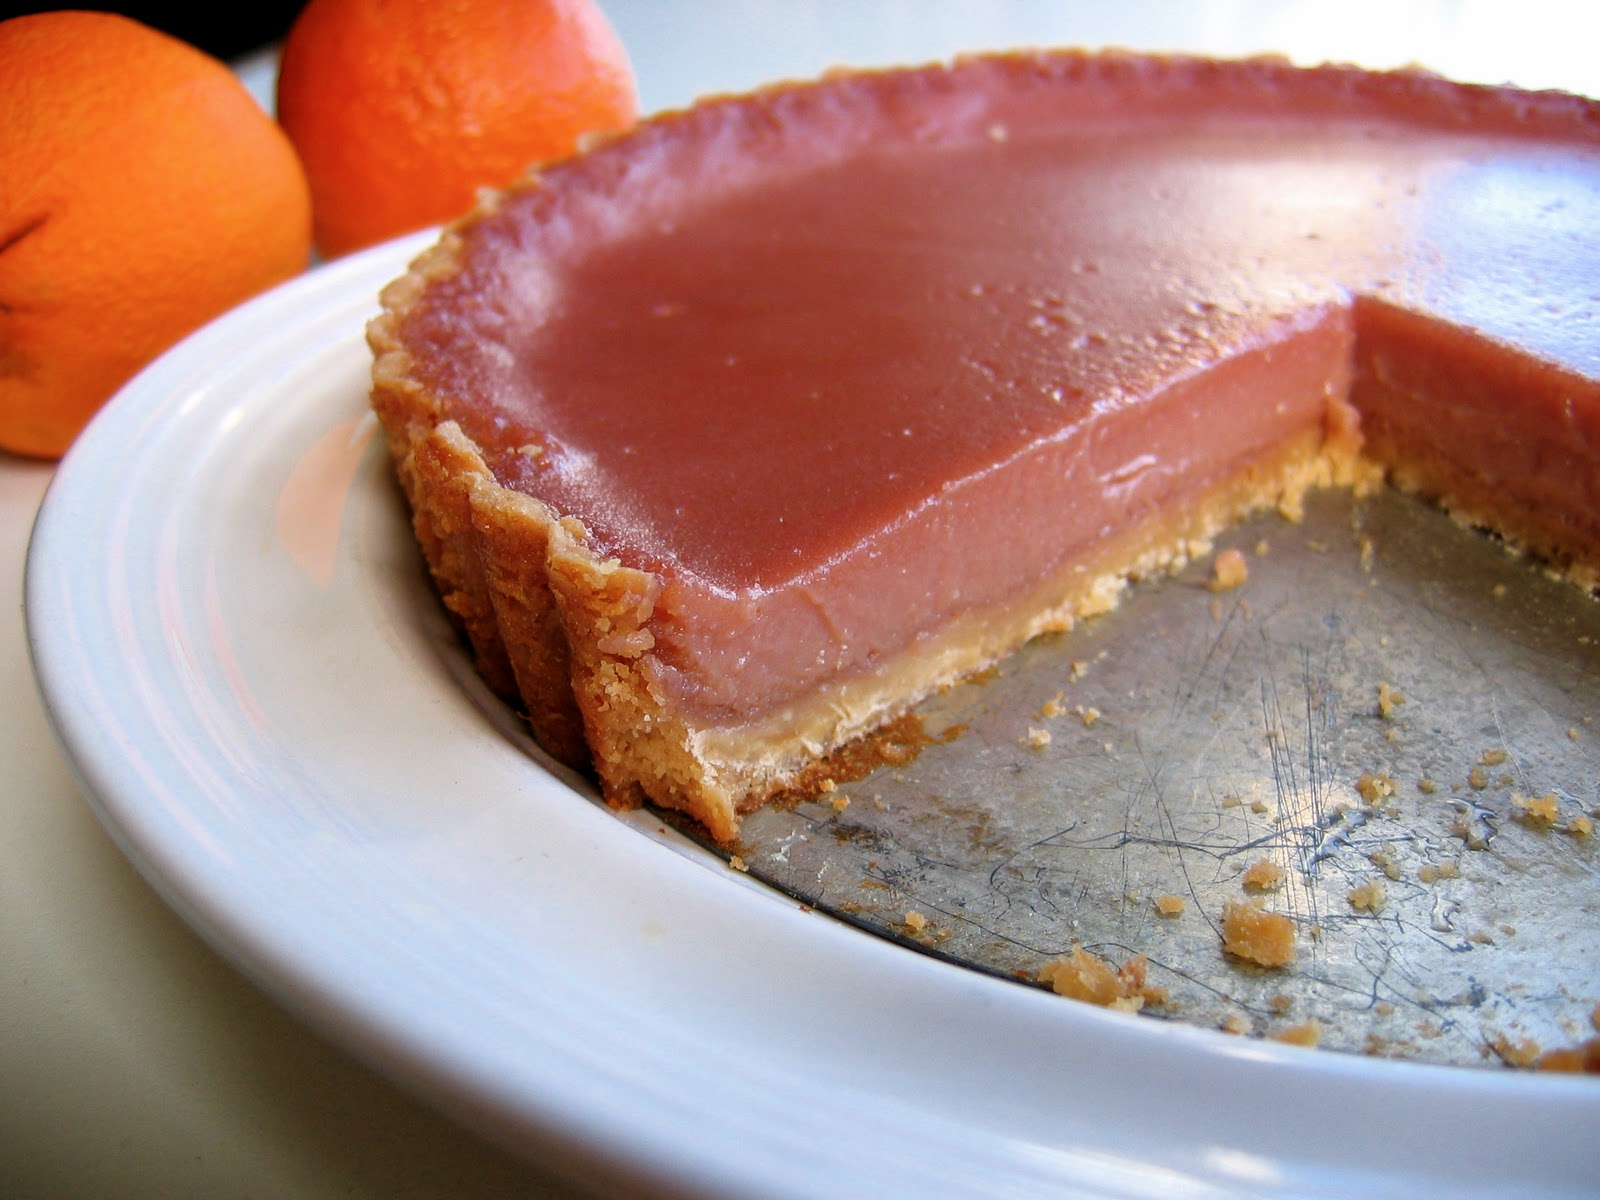 ... blood orange sherbet blood orange tonic no bake blood orange pie blood